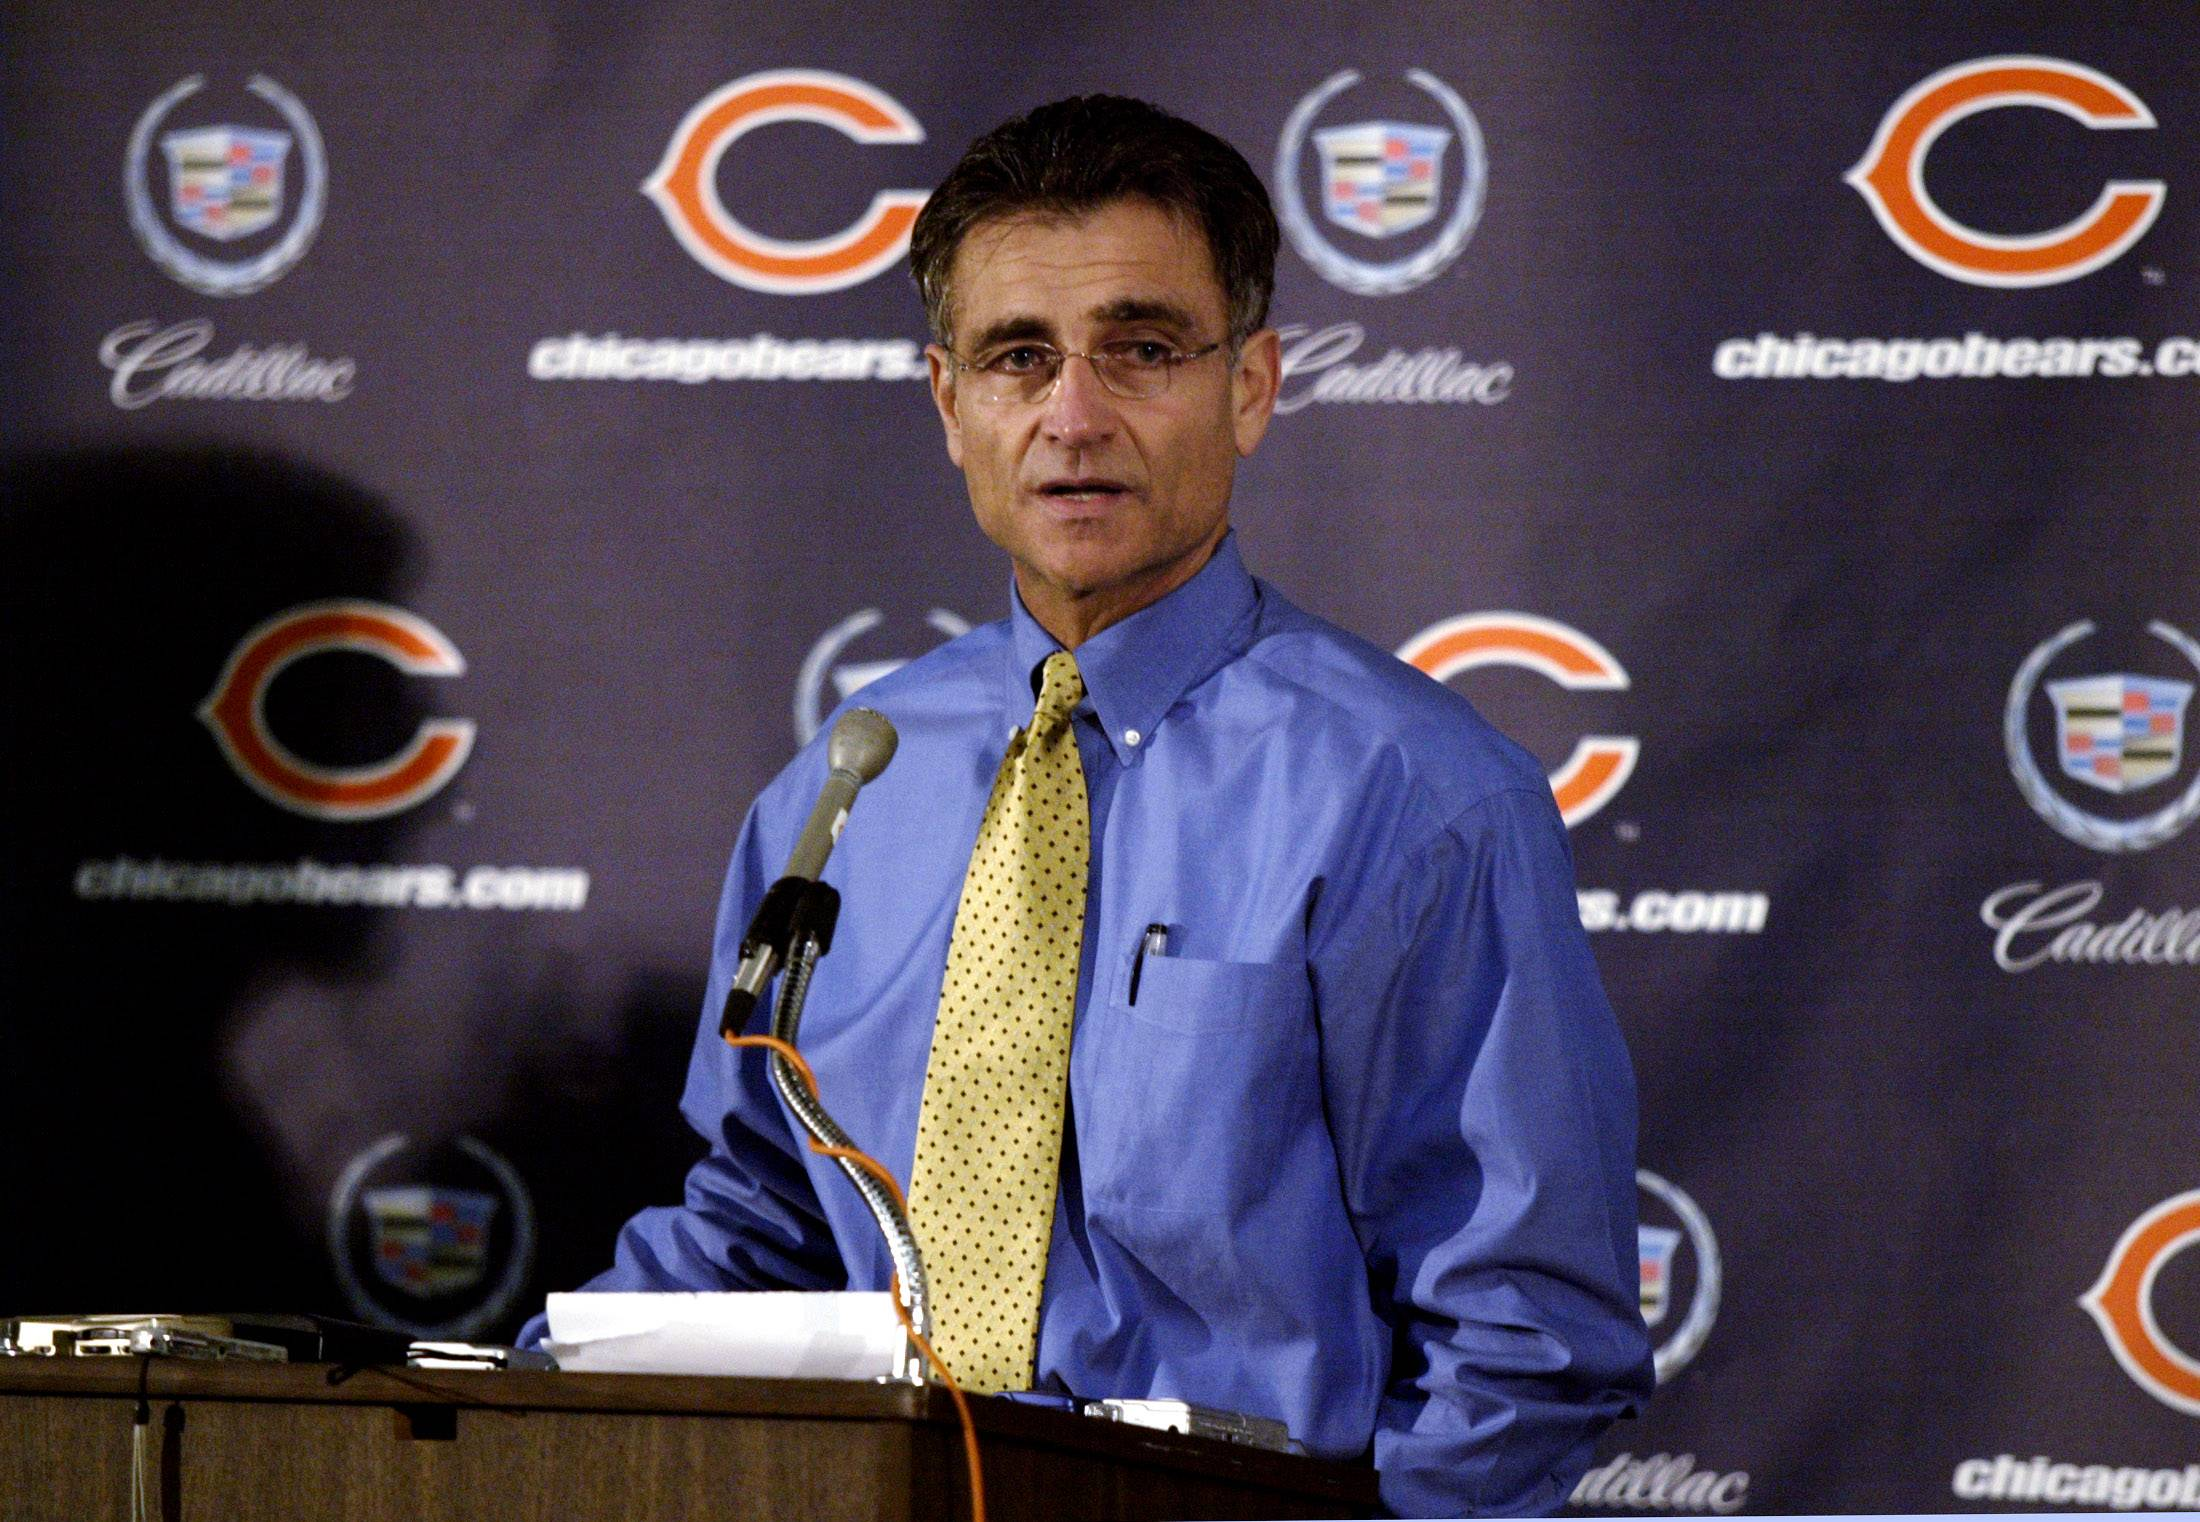 Former Bears general manager Jerry Angelo leveled some harsh criticism at quarterback Jay Cutler, which Mike North believes is justified.